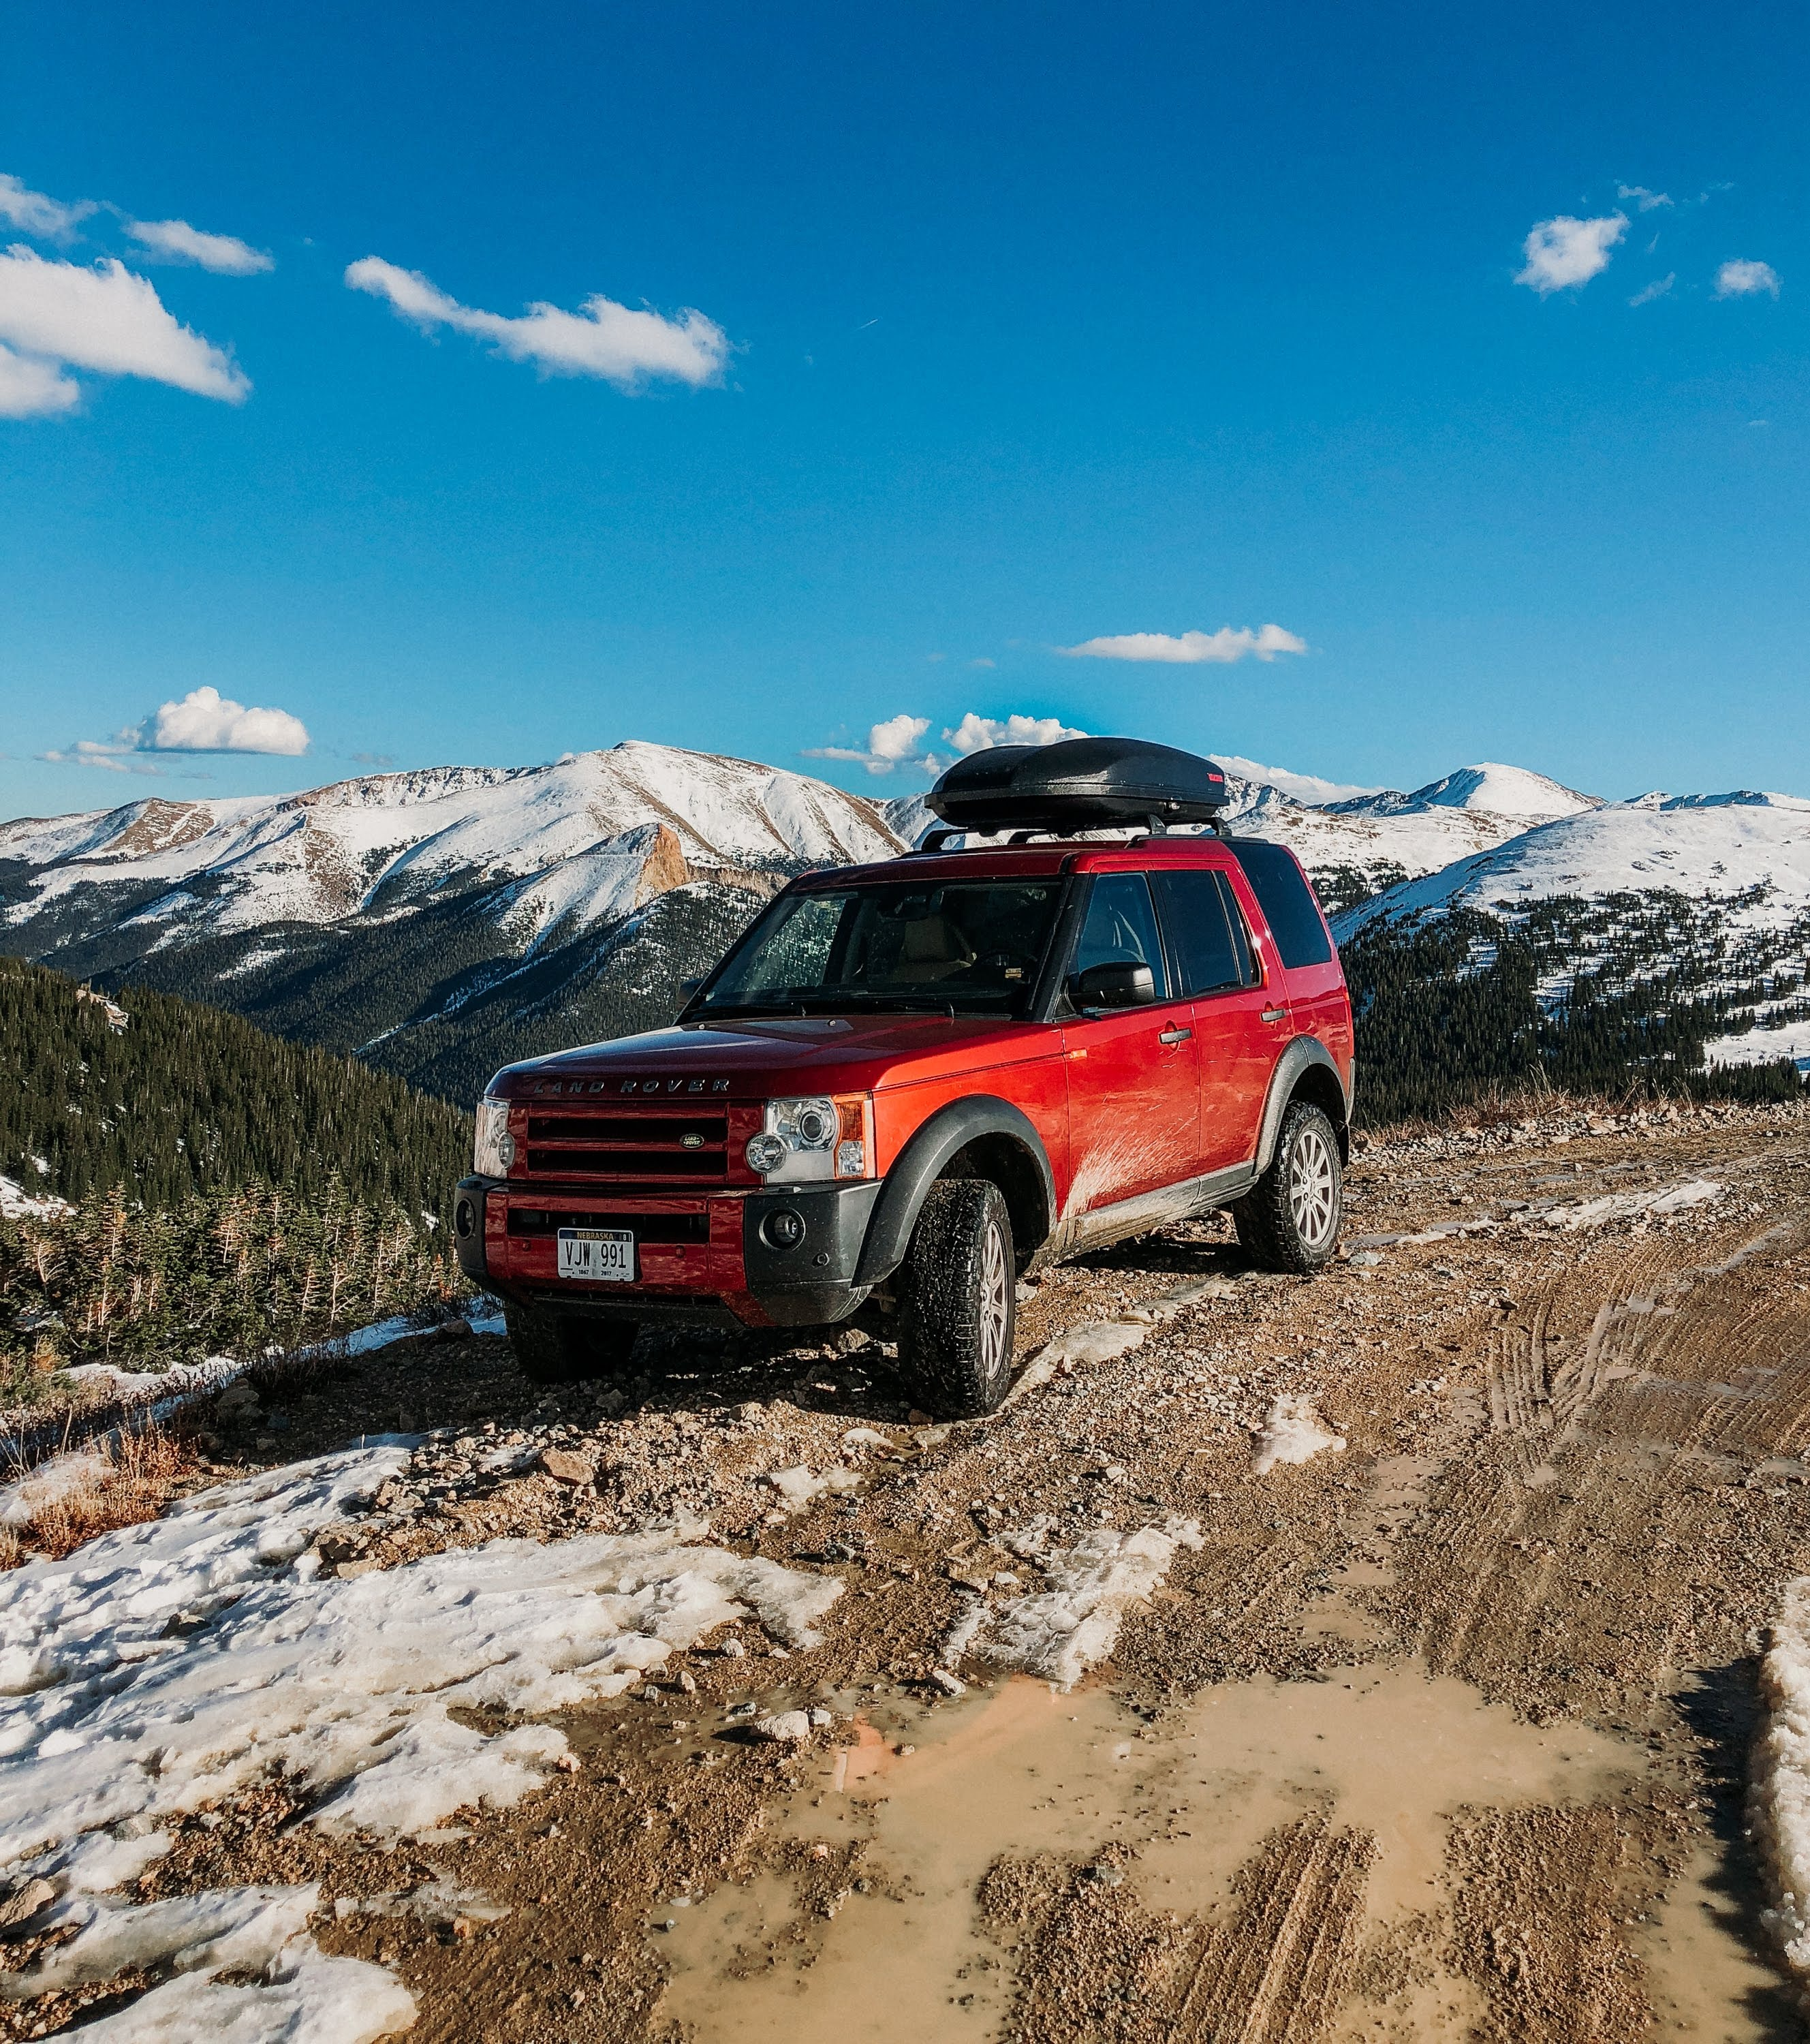 red Land Rover SUV